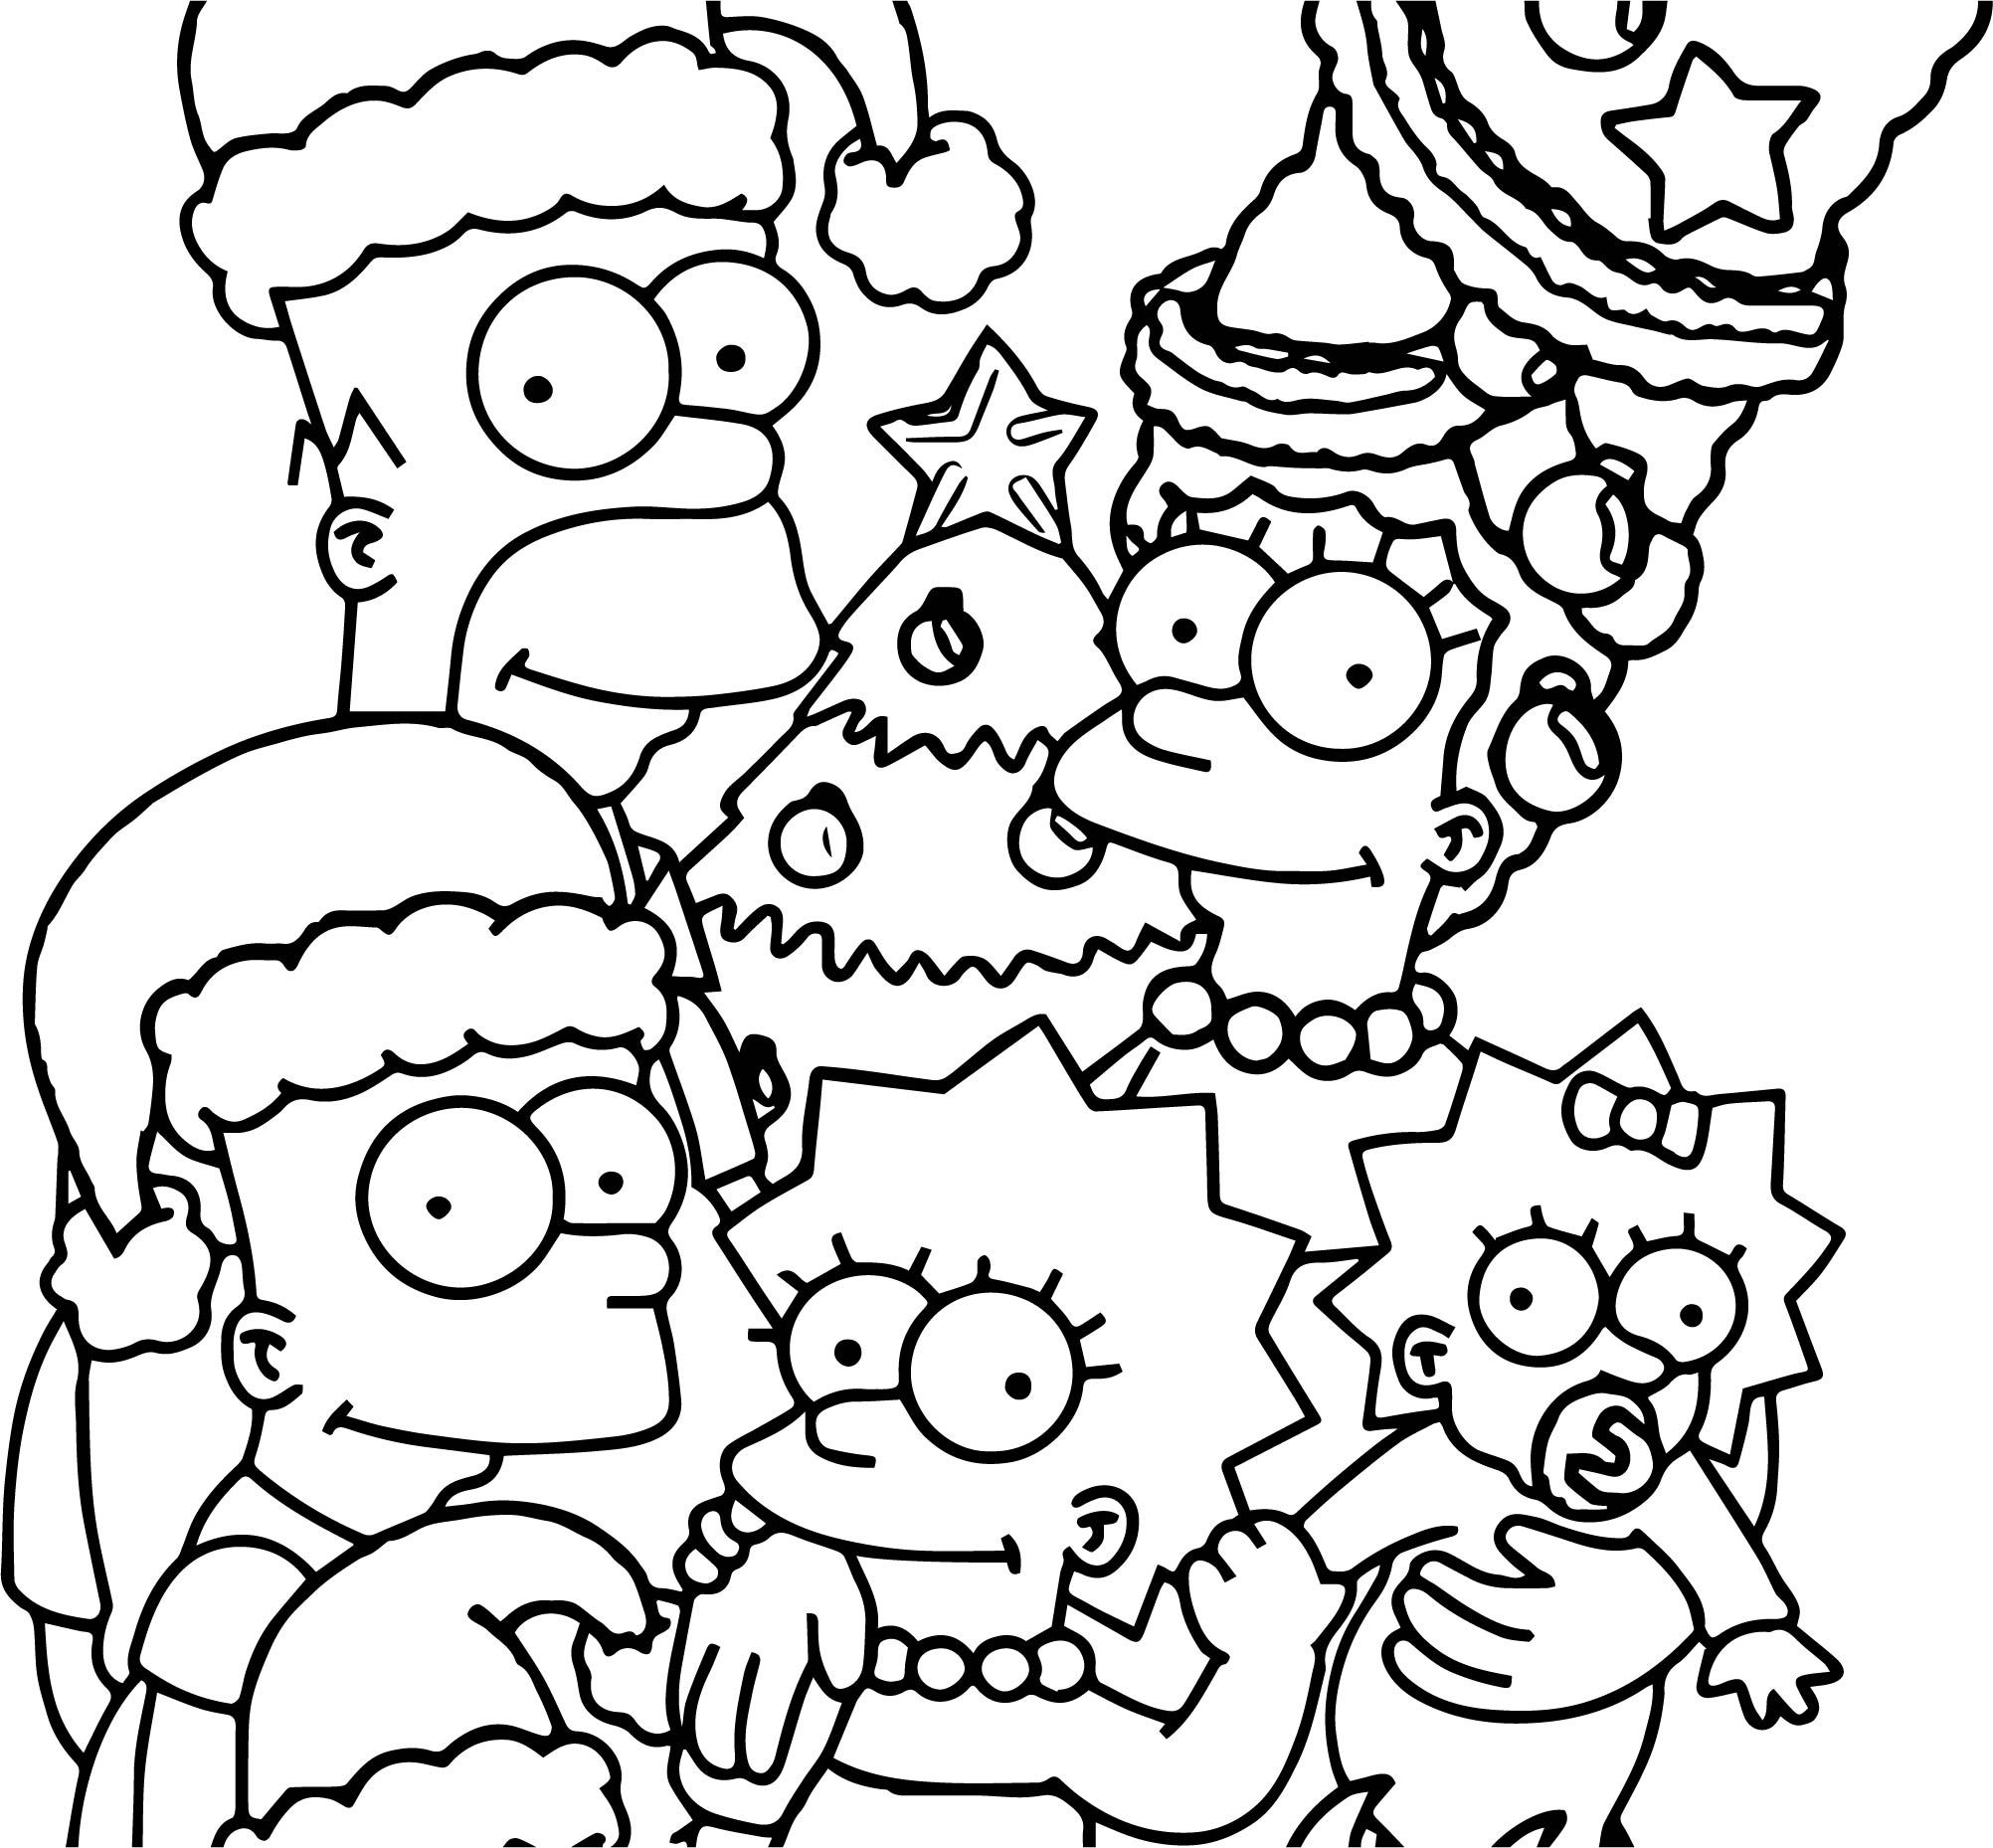 Pin By Wecoloringpage Coloring Pages On Simpson S Coloring Pages In 2020 Christmas Coloring Pages Christmas Colors Coloring Books